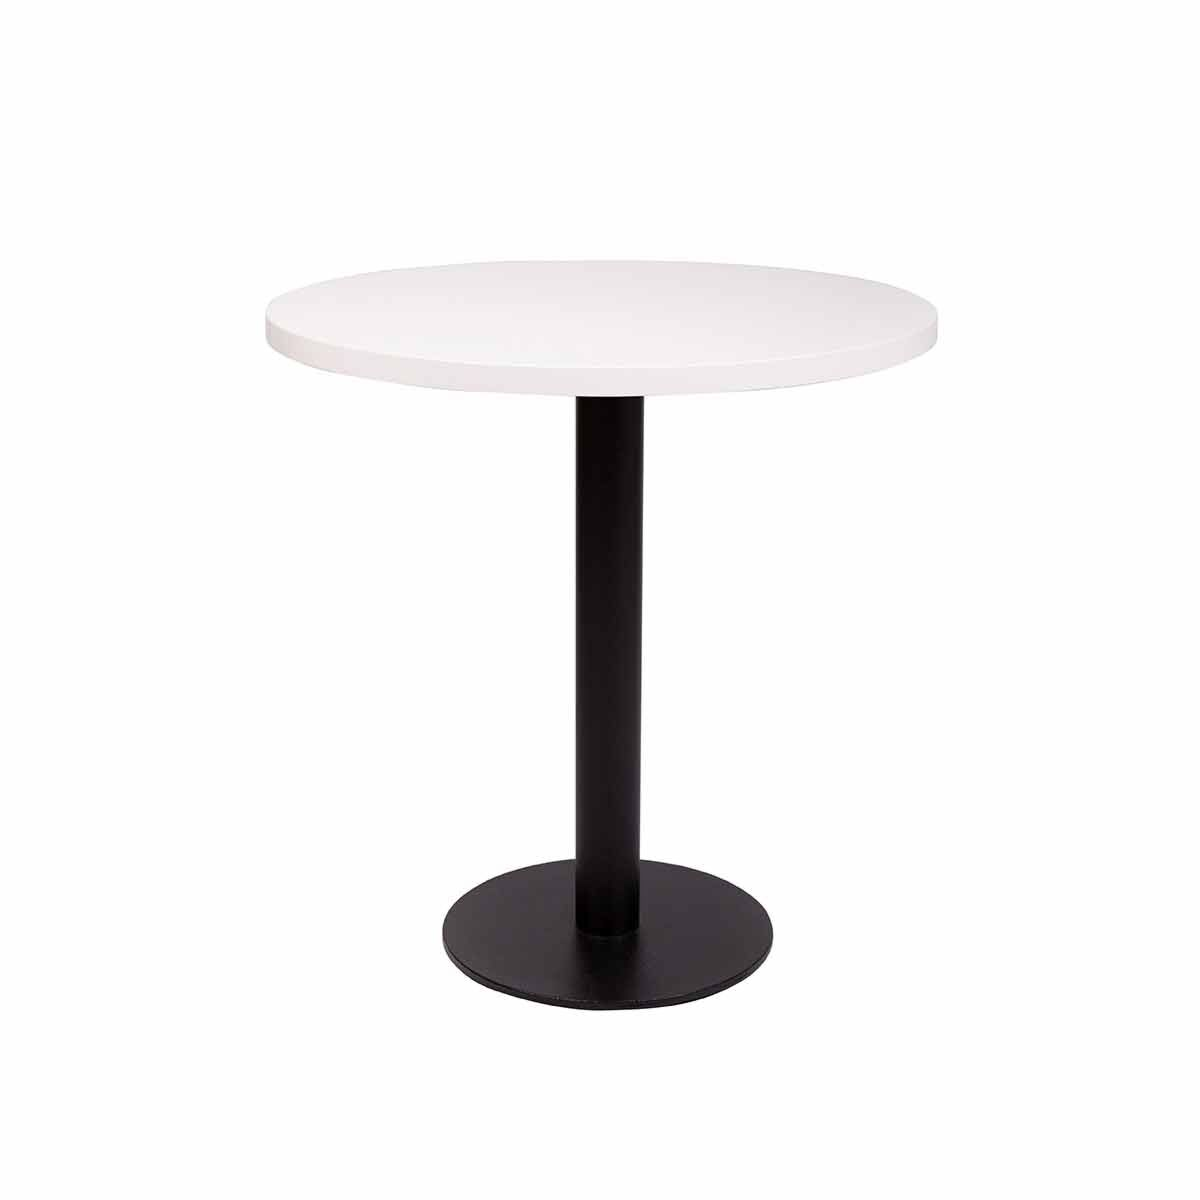 Tabilo Forza Round Dining Table 700mm